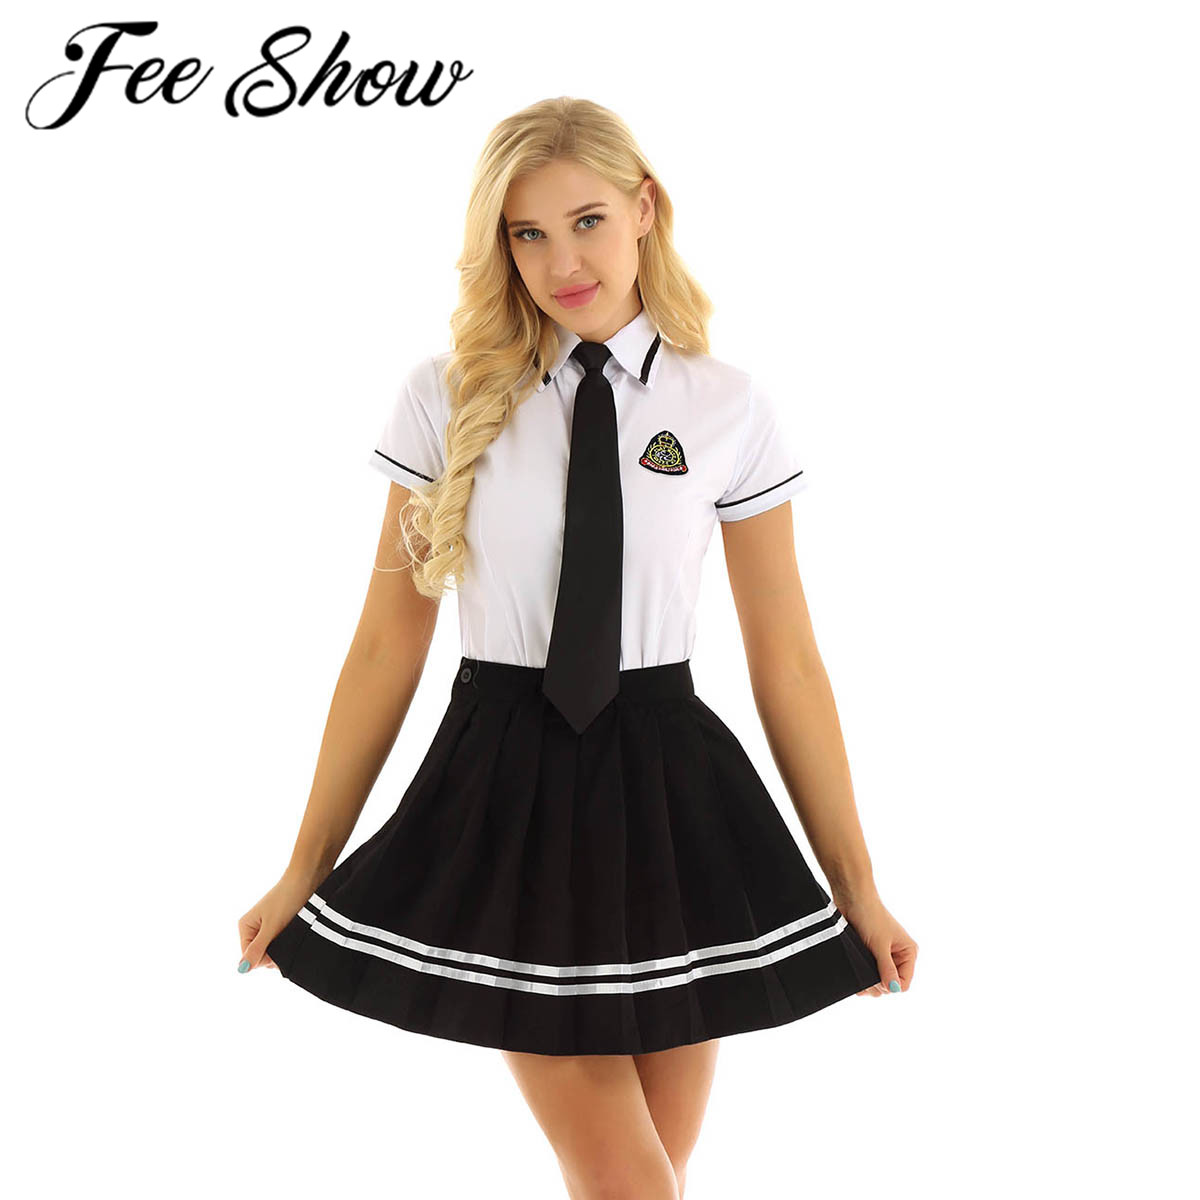 Girls Japanese School Uniform British Style School Uniform Anime Costumes White T-shirt Top Black Pleated Skirt with Badge Tie plus size short overalls